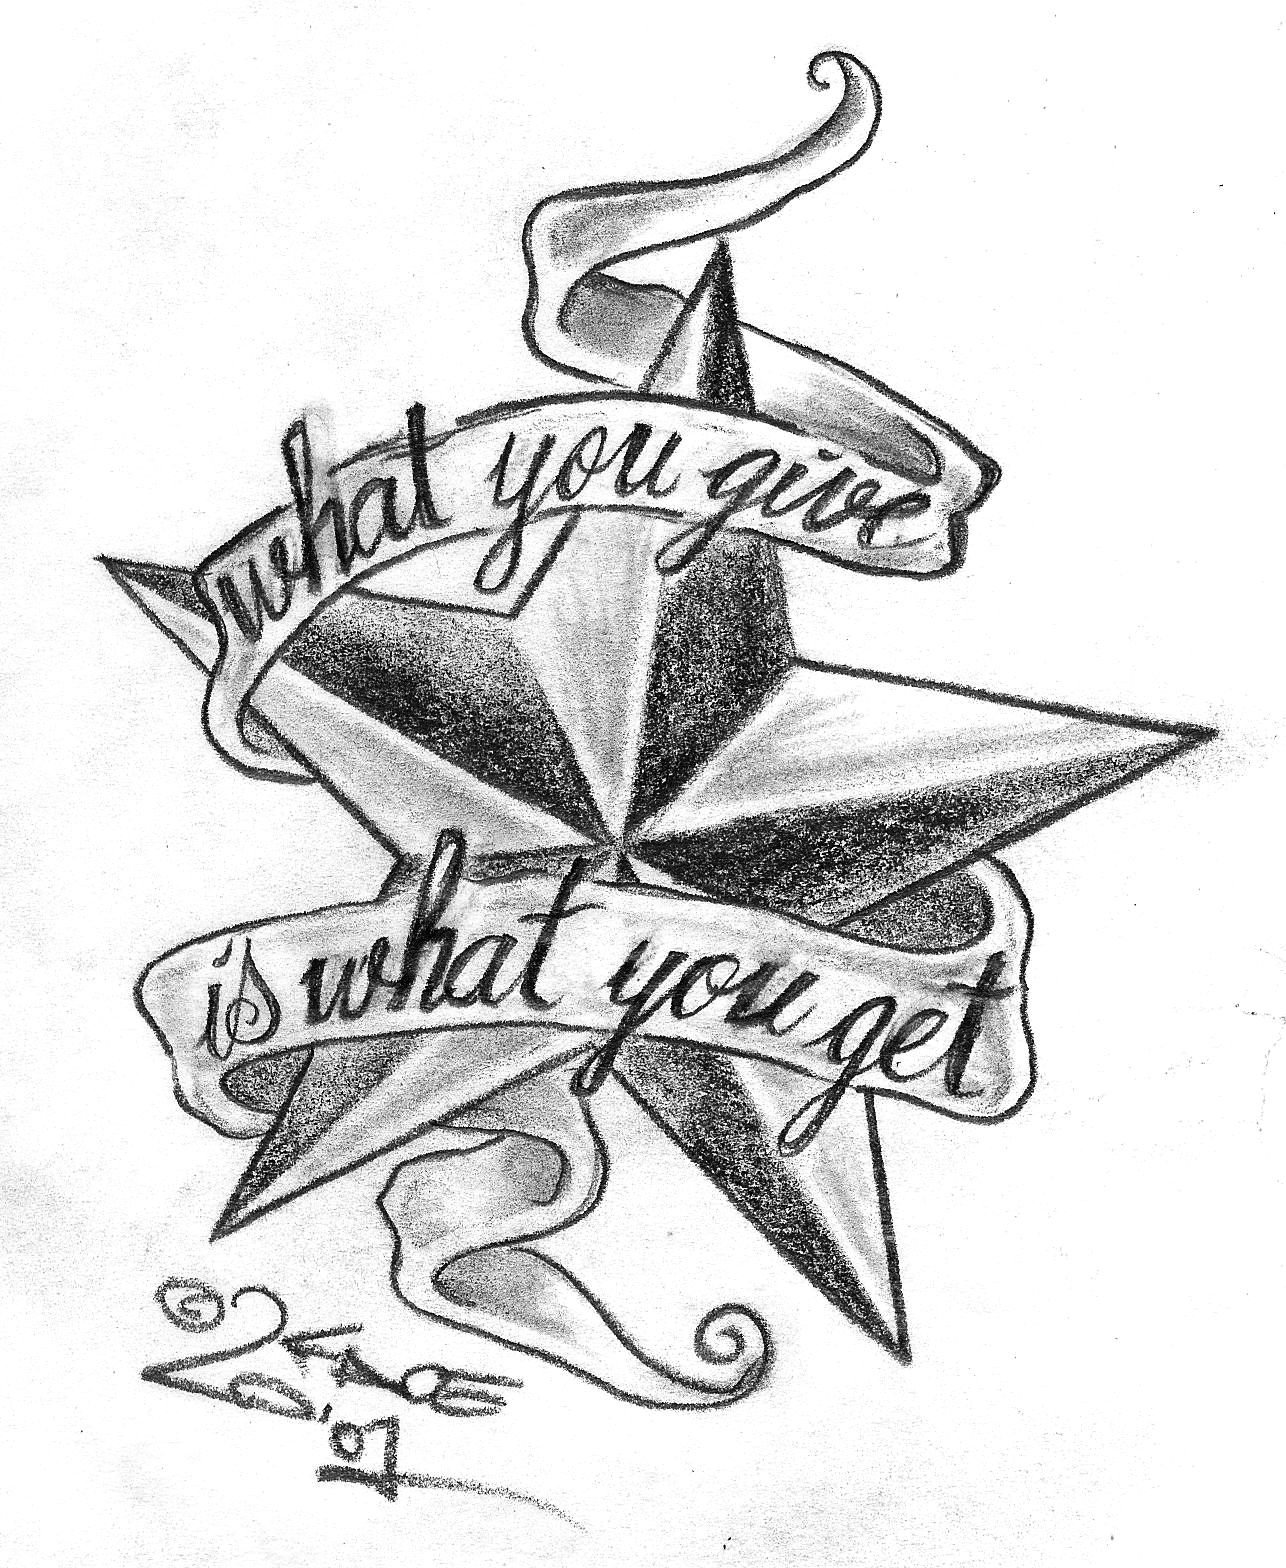 Best of free tattoos design tattoo designs for Free tattoo design